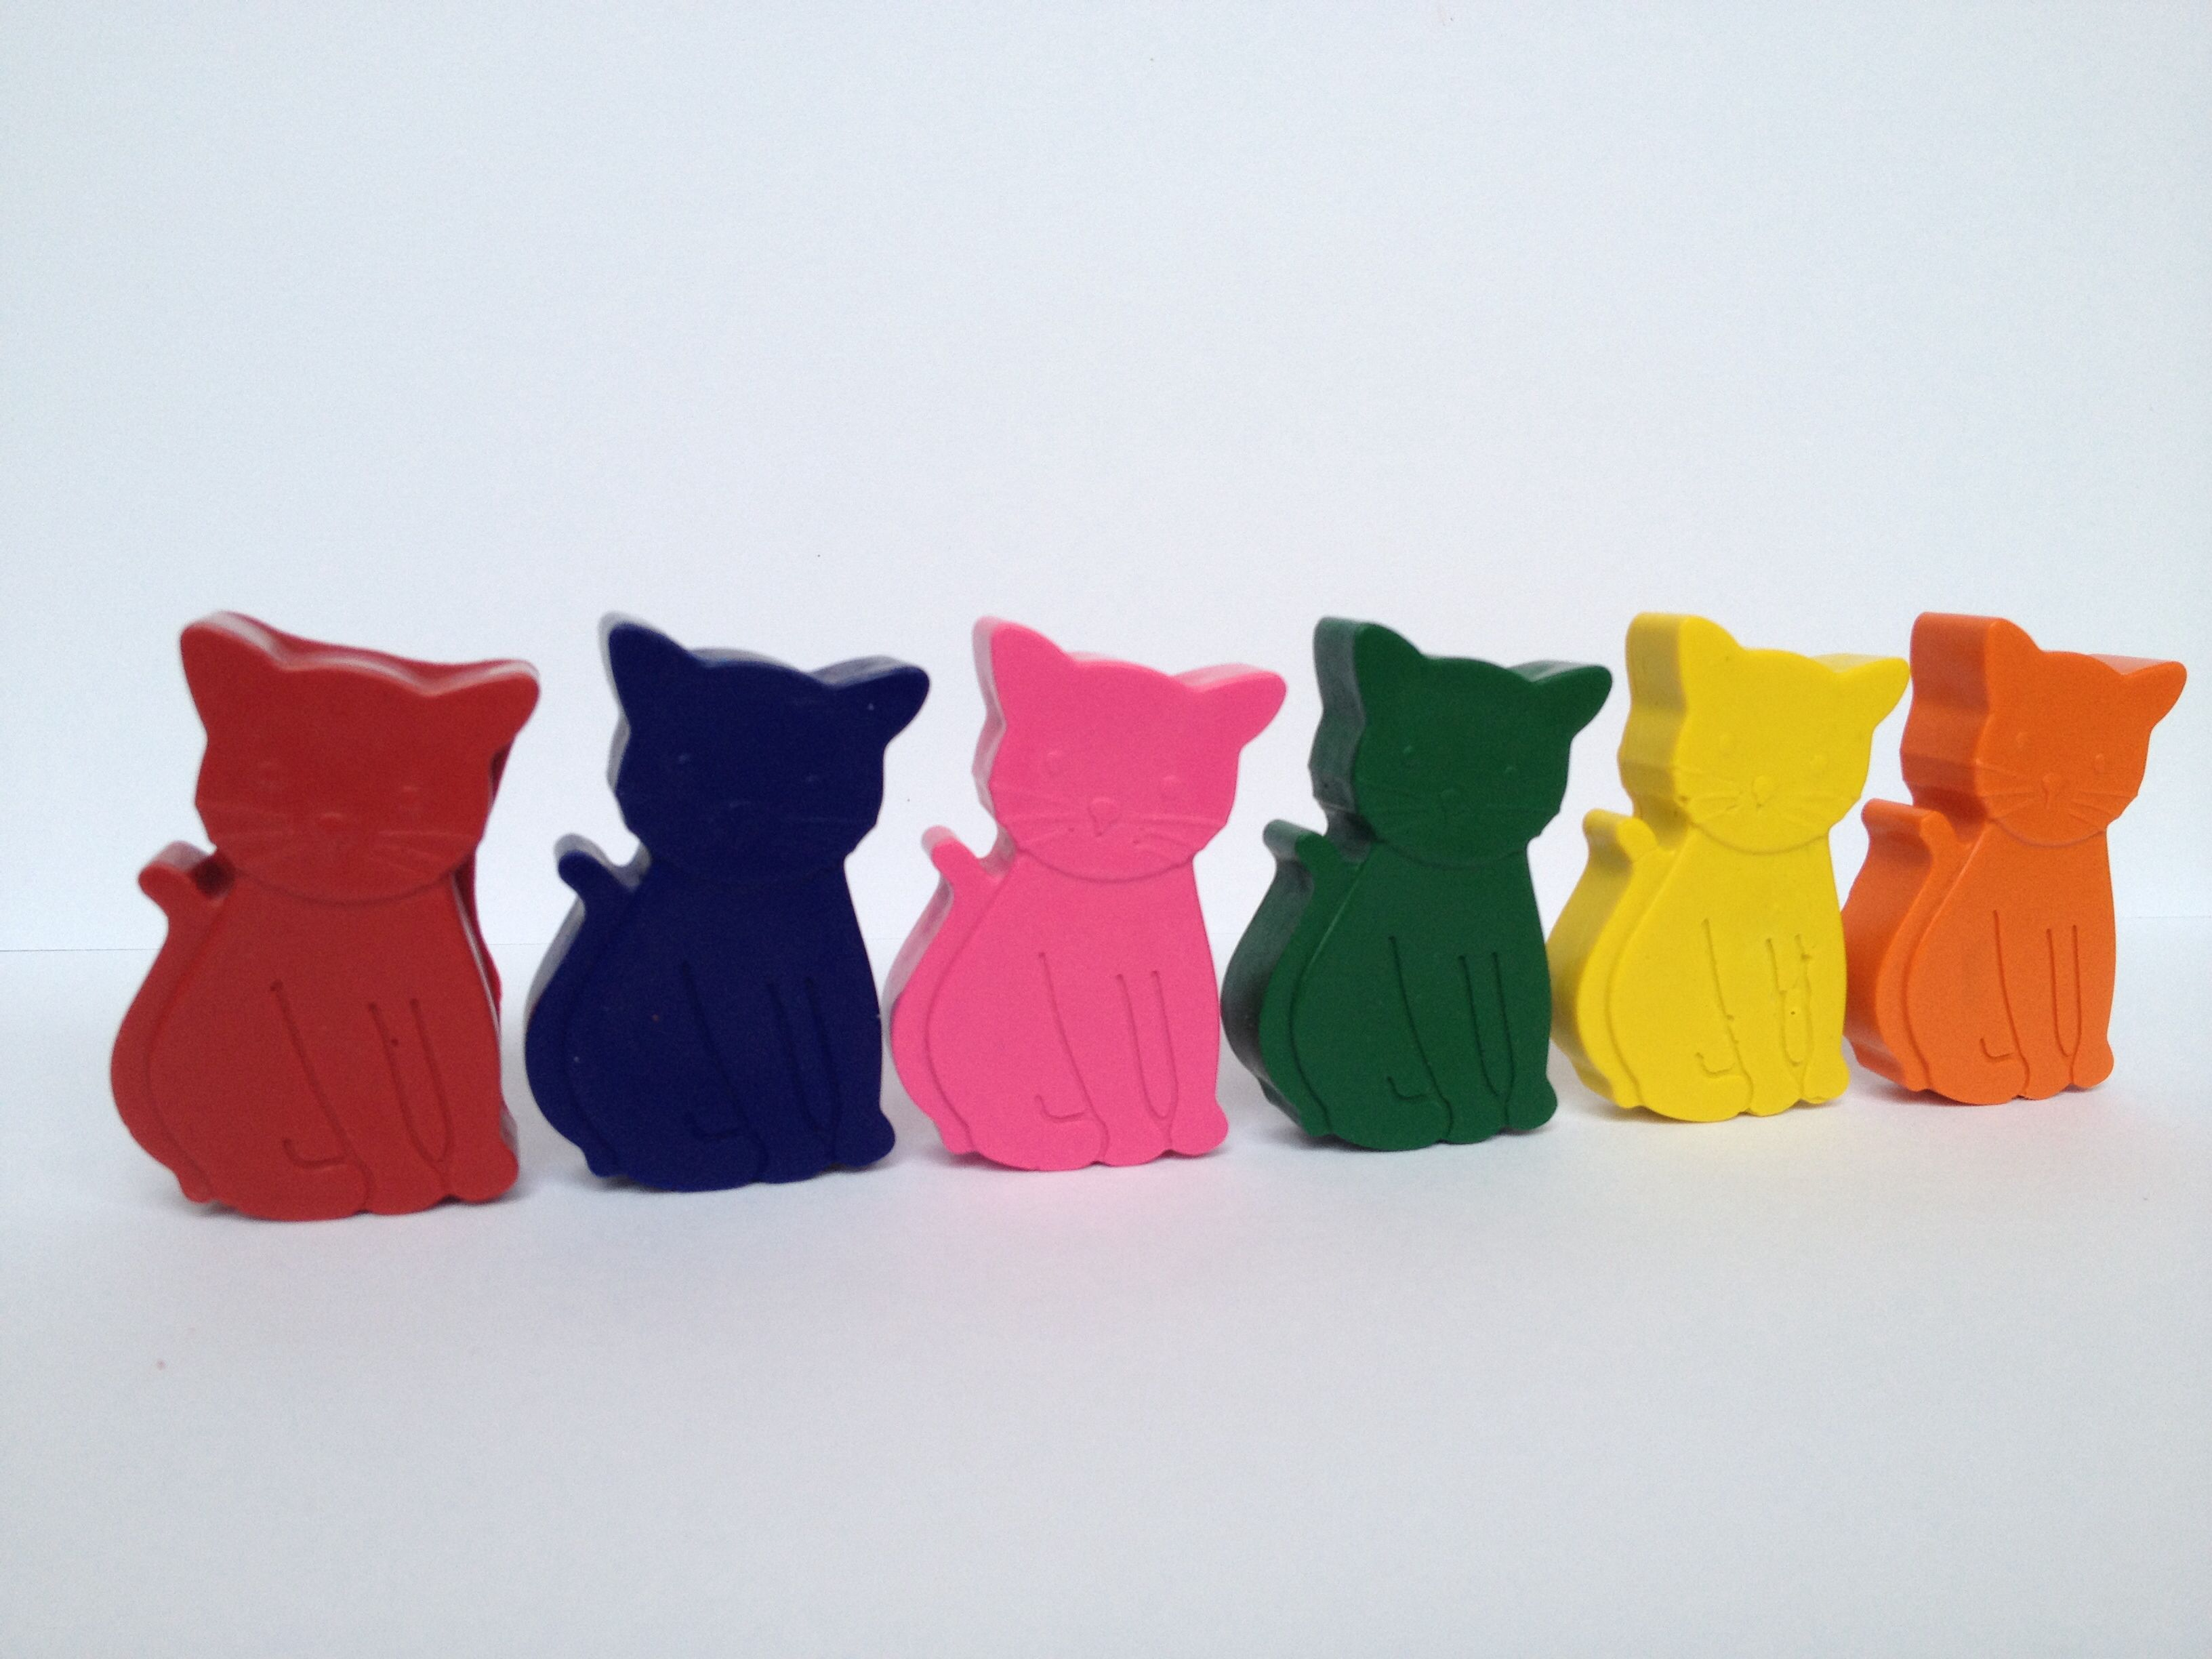 Meow. Handmade non-toxic novelty crayons.  www.facebook.com/isquiggle